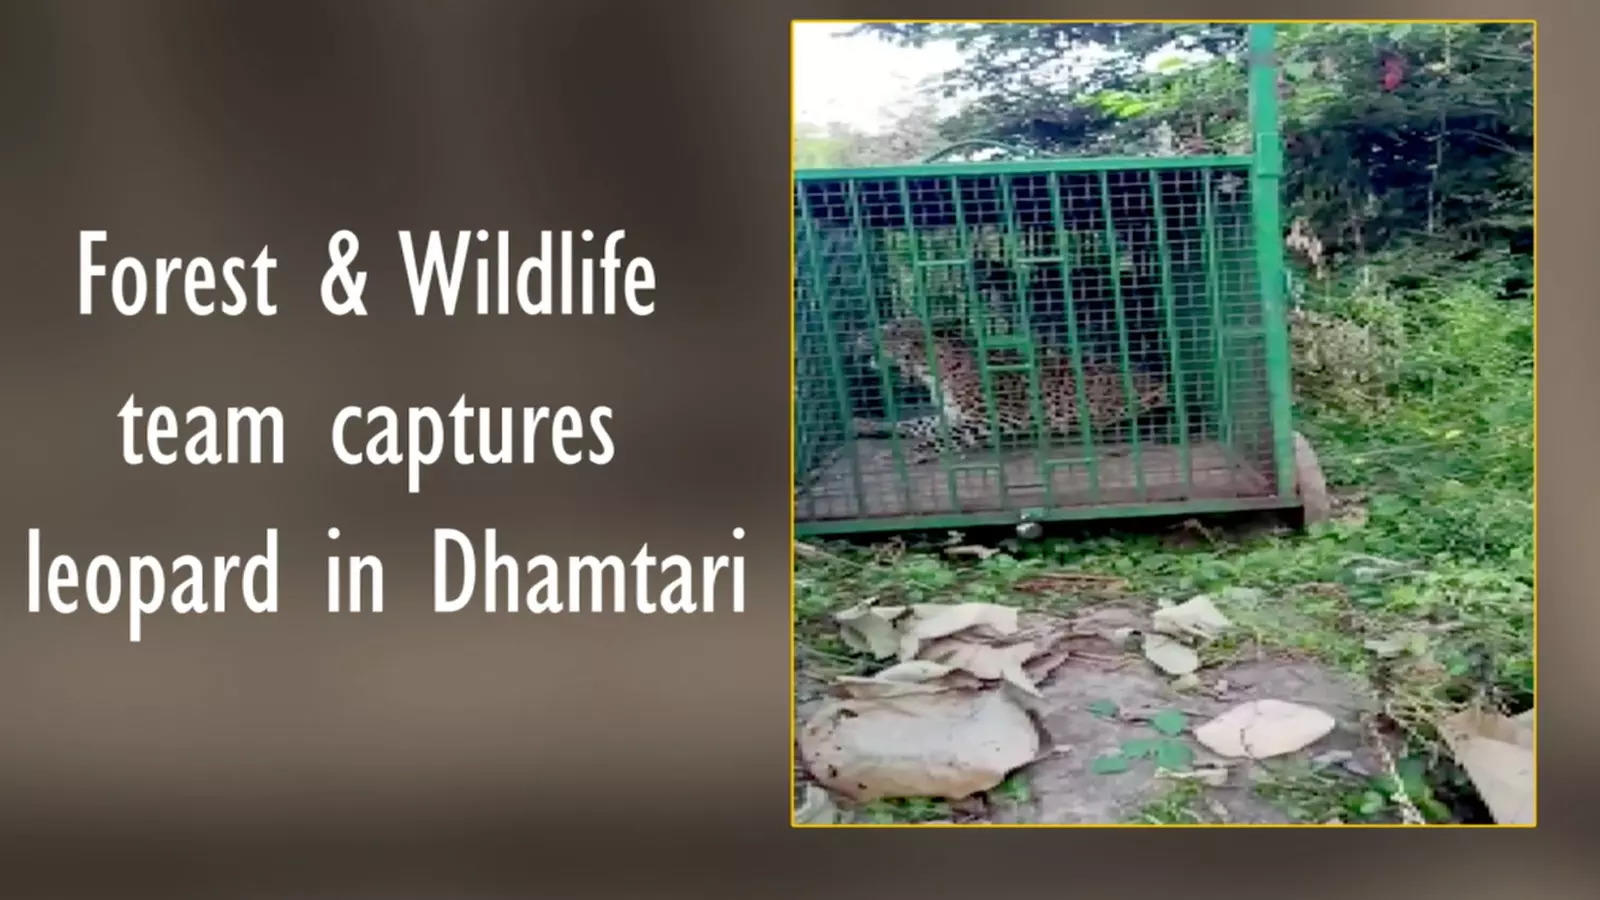 forest-and-wildlife-team-captures-leopard-in-dhamtari